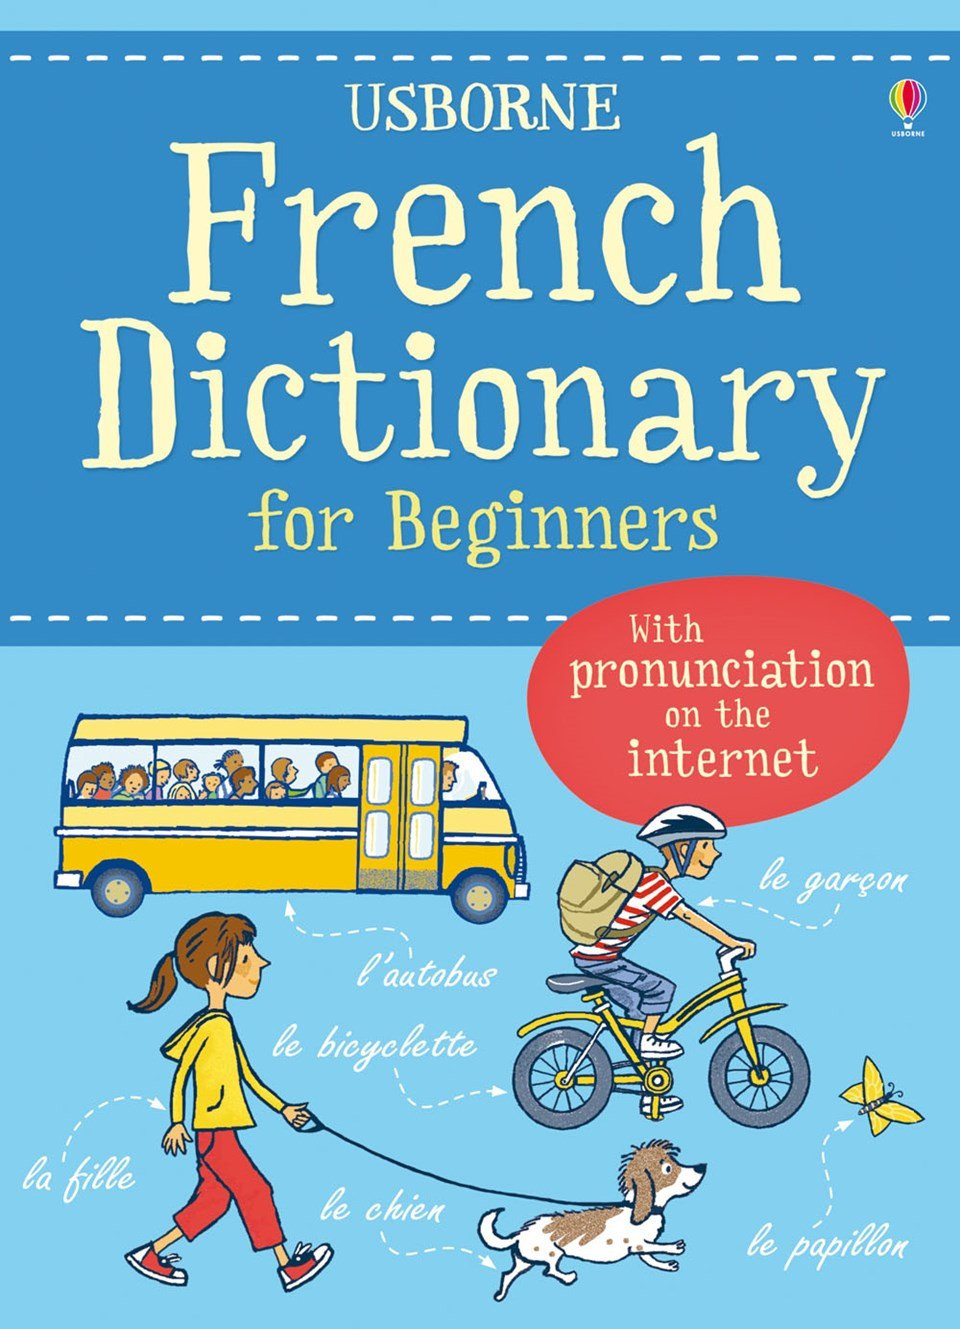 French Dictionary for Beginners - Usborne